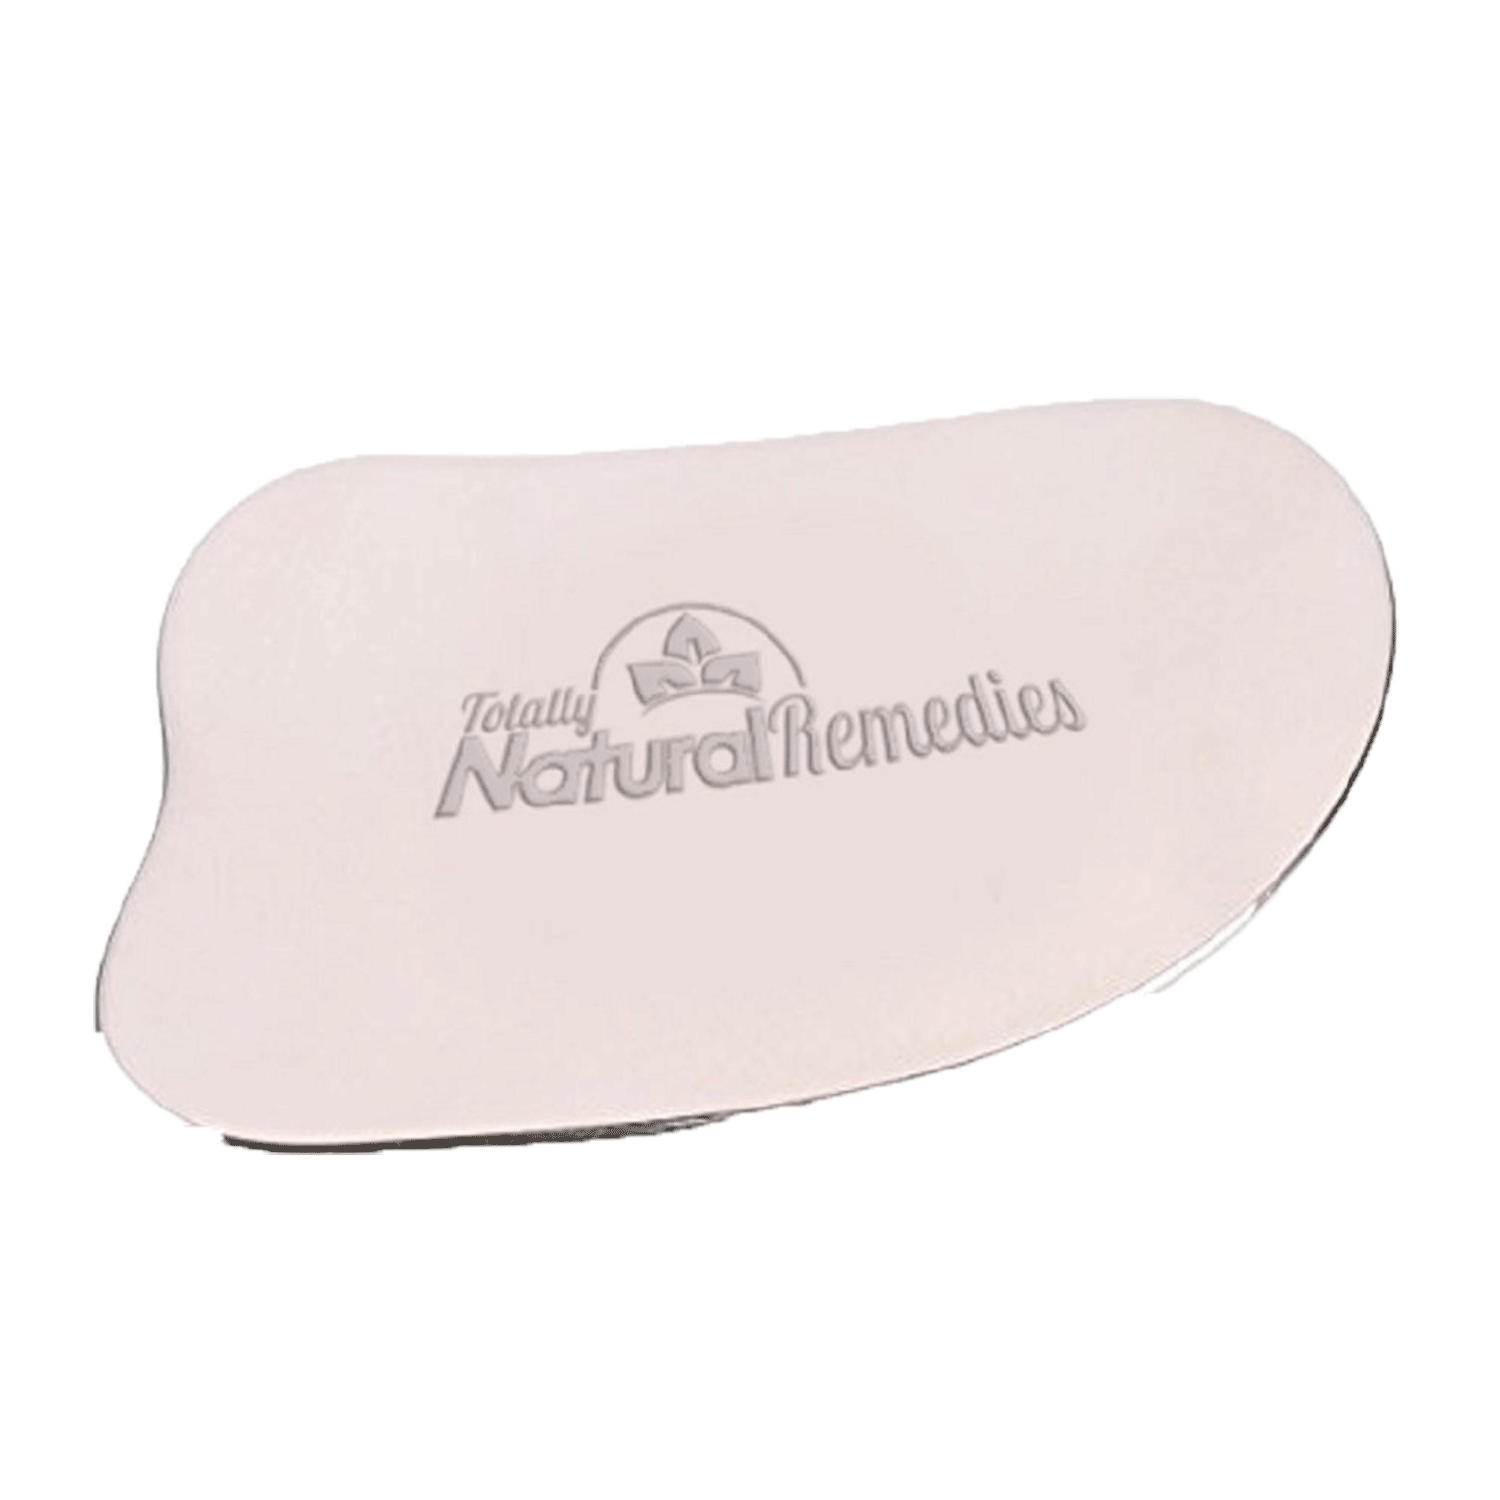 Premium Handmade 100% Stainless Steel Gua Sha Massage Scraping Tool - Myofascial Muscle Relief